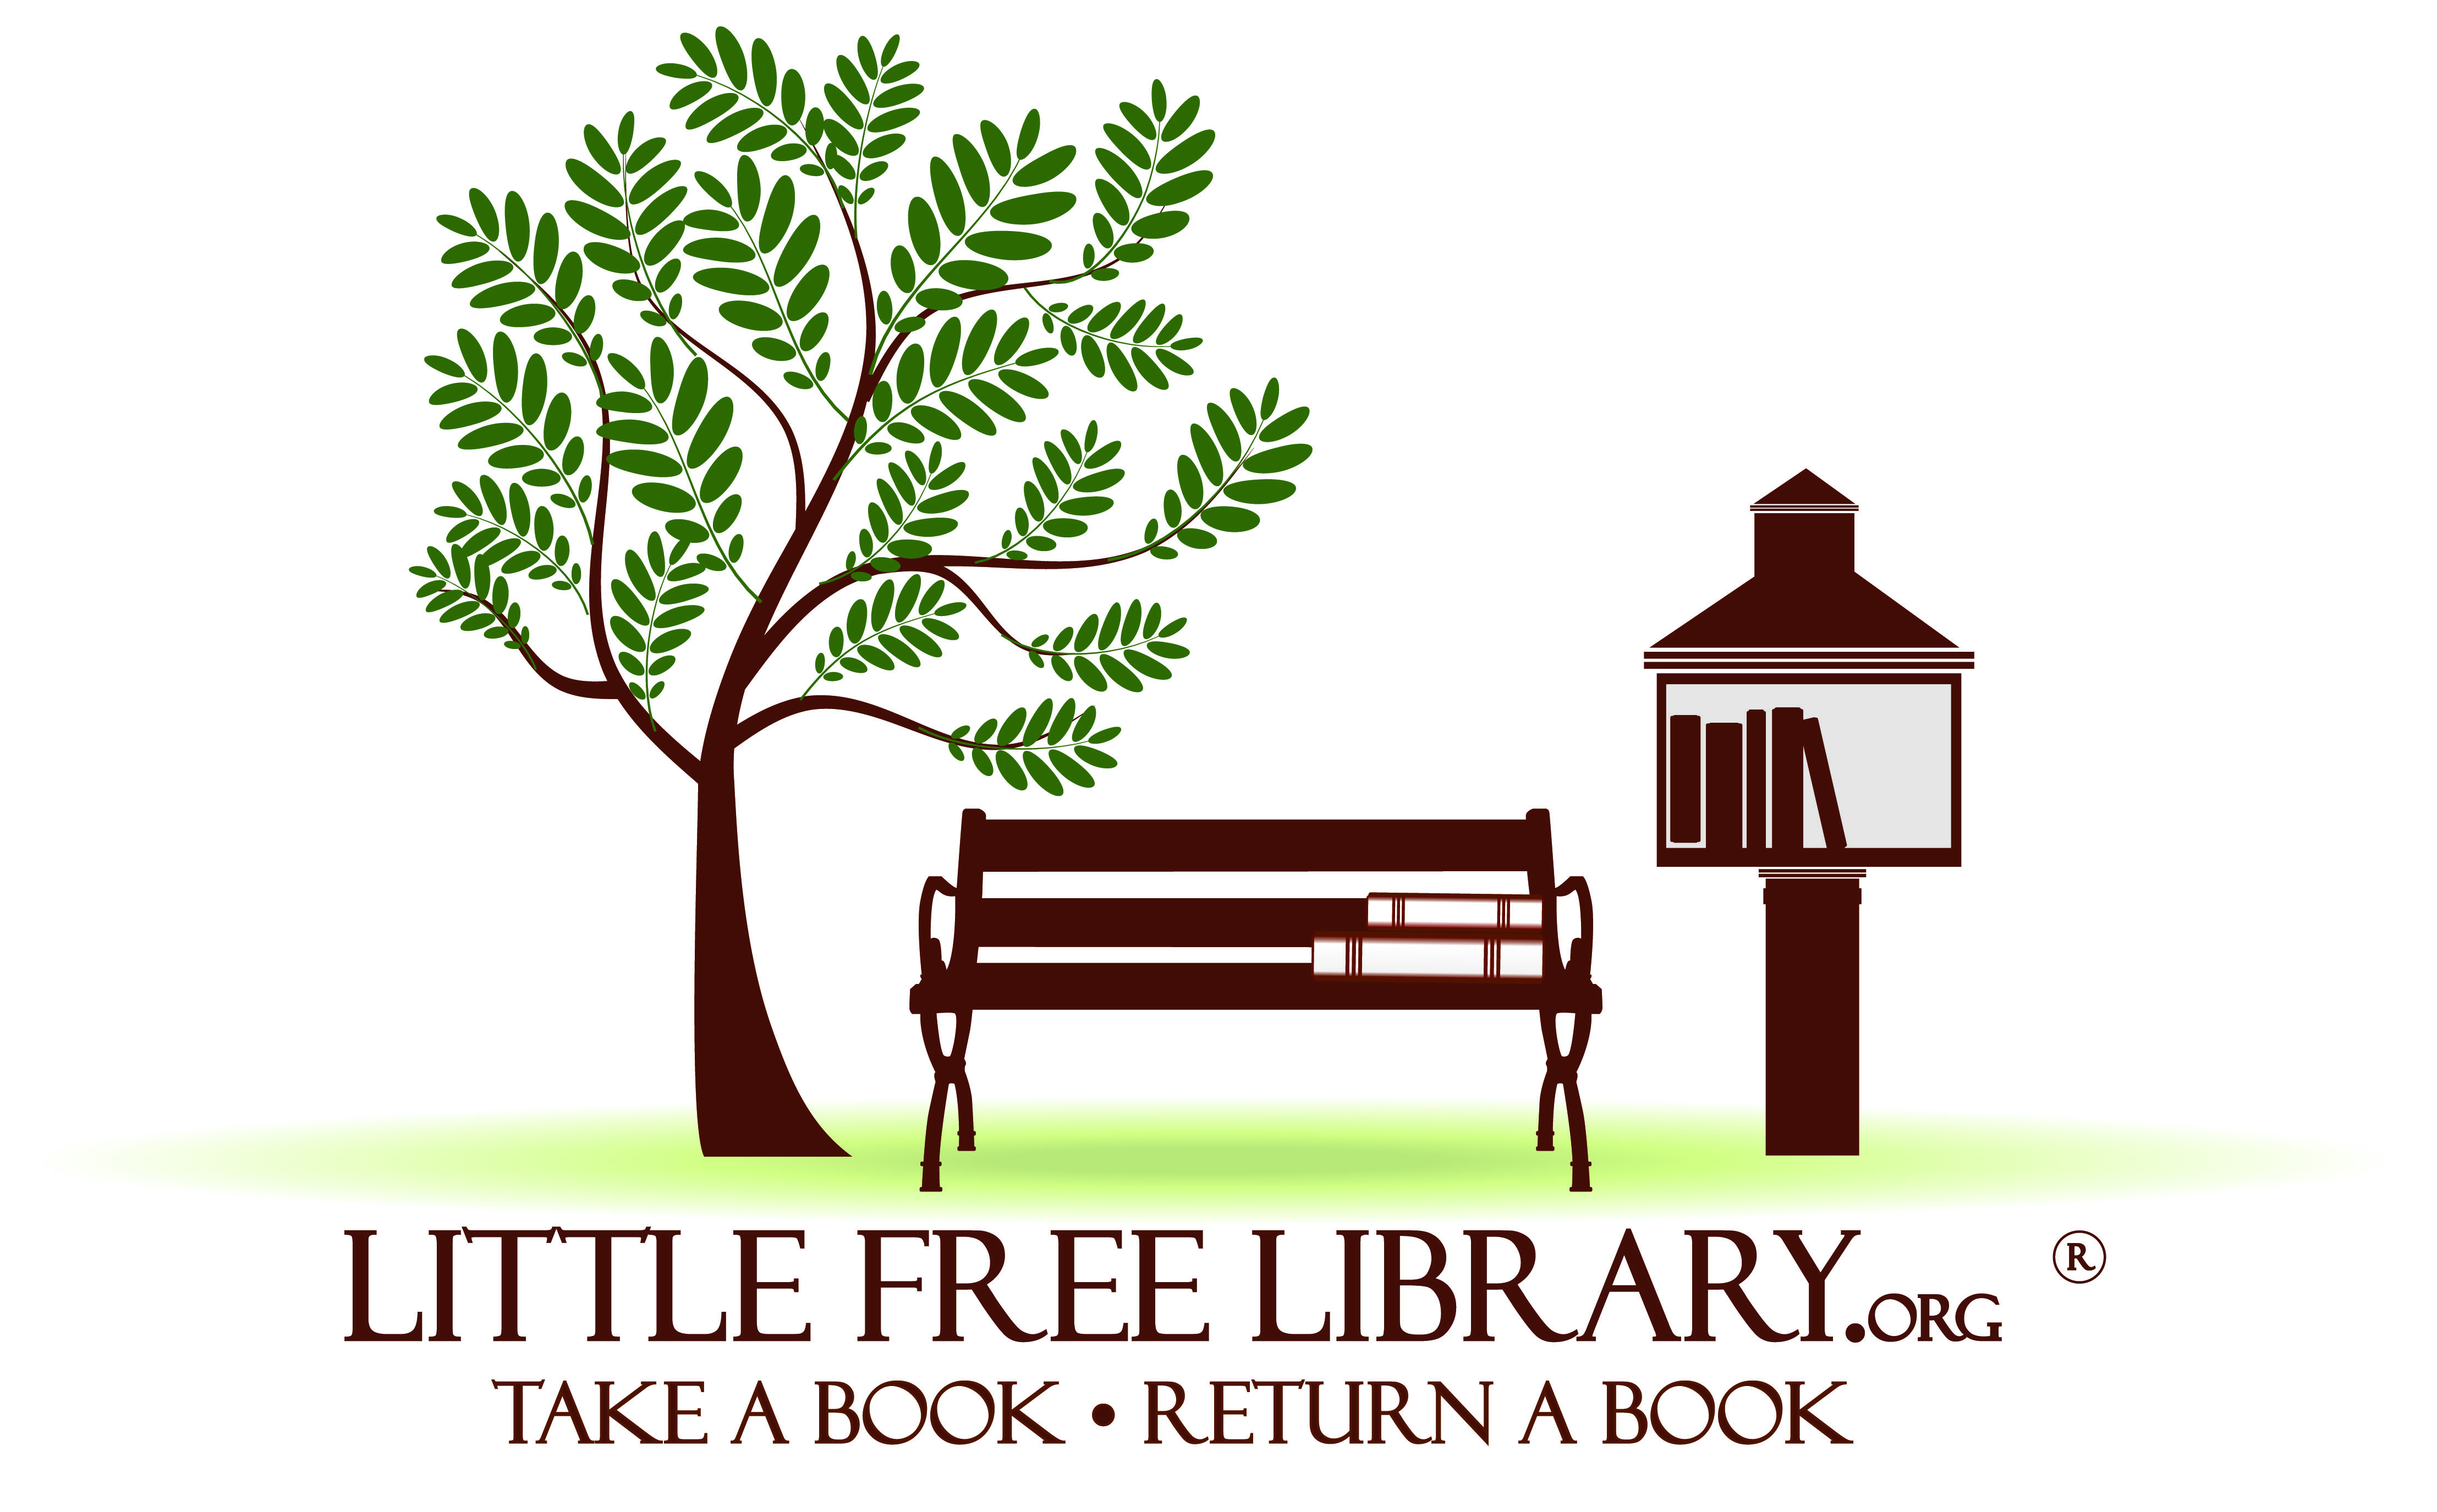 Logo-LittleFreeLibraryVERTICAL.jpg